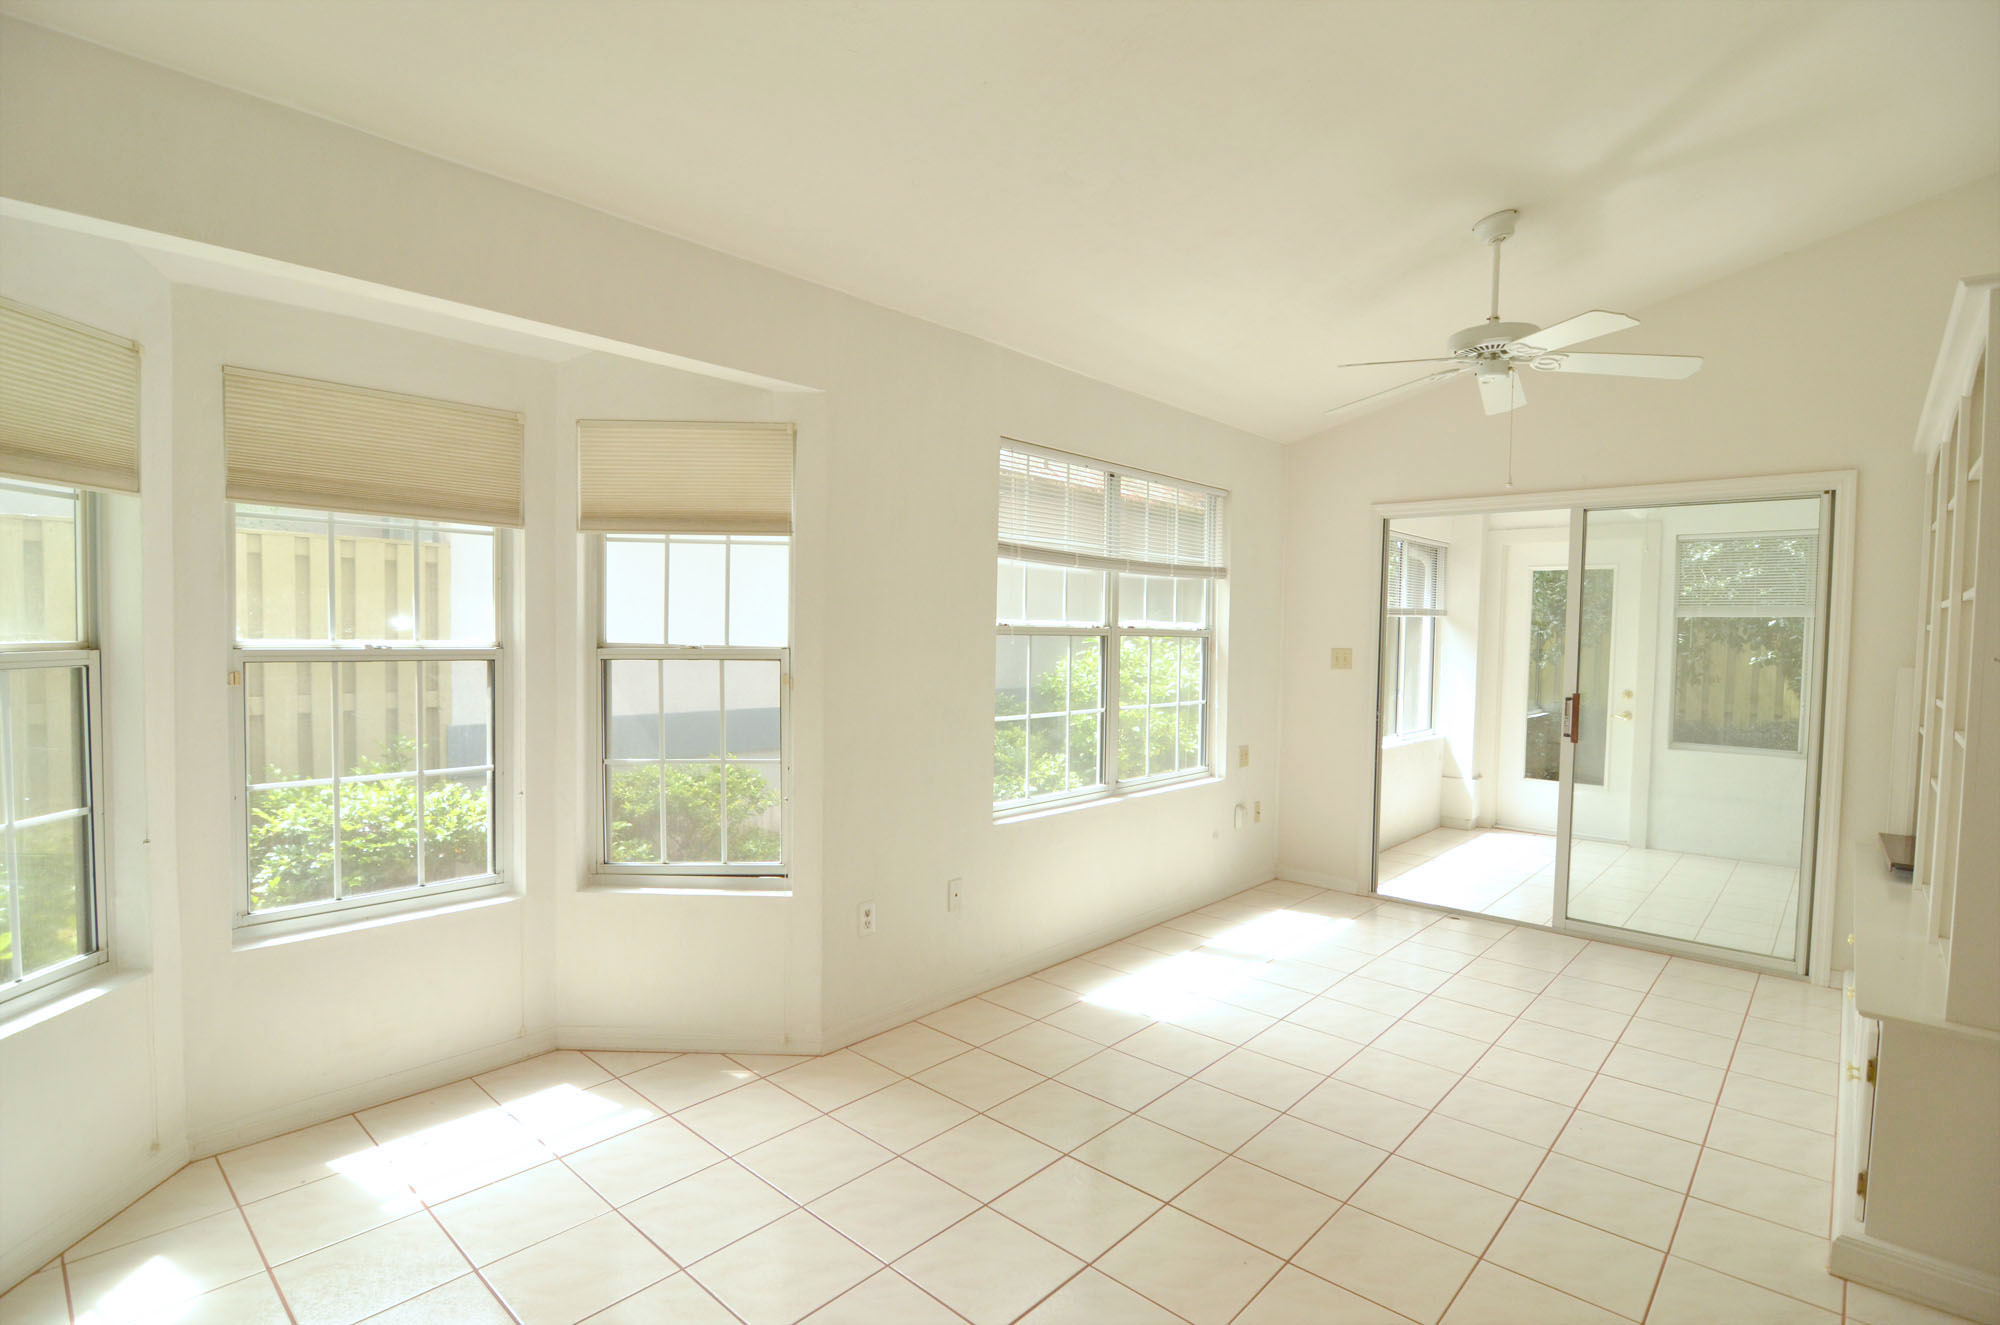 Sold: Home in Haile Plantation